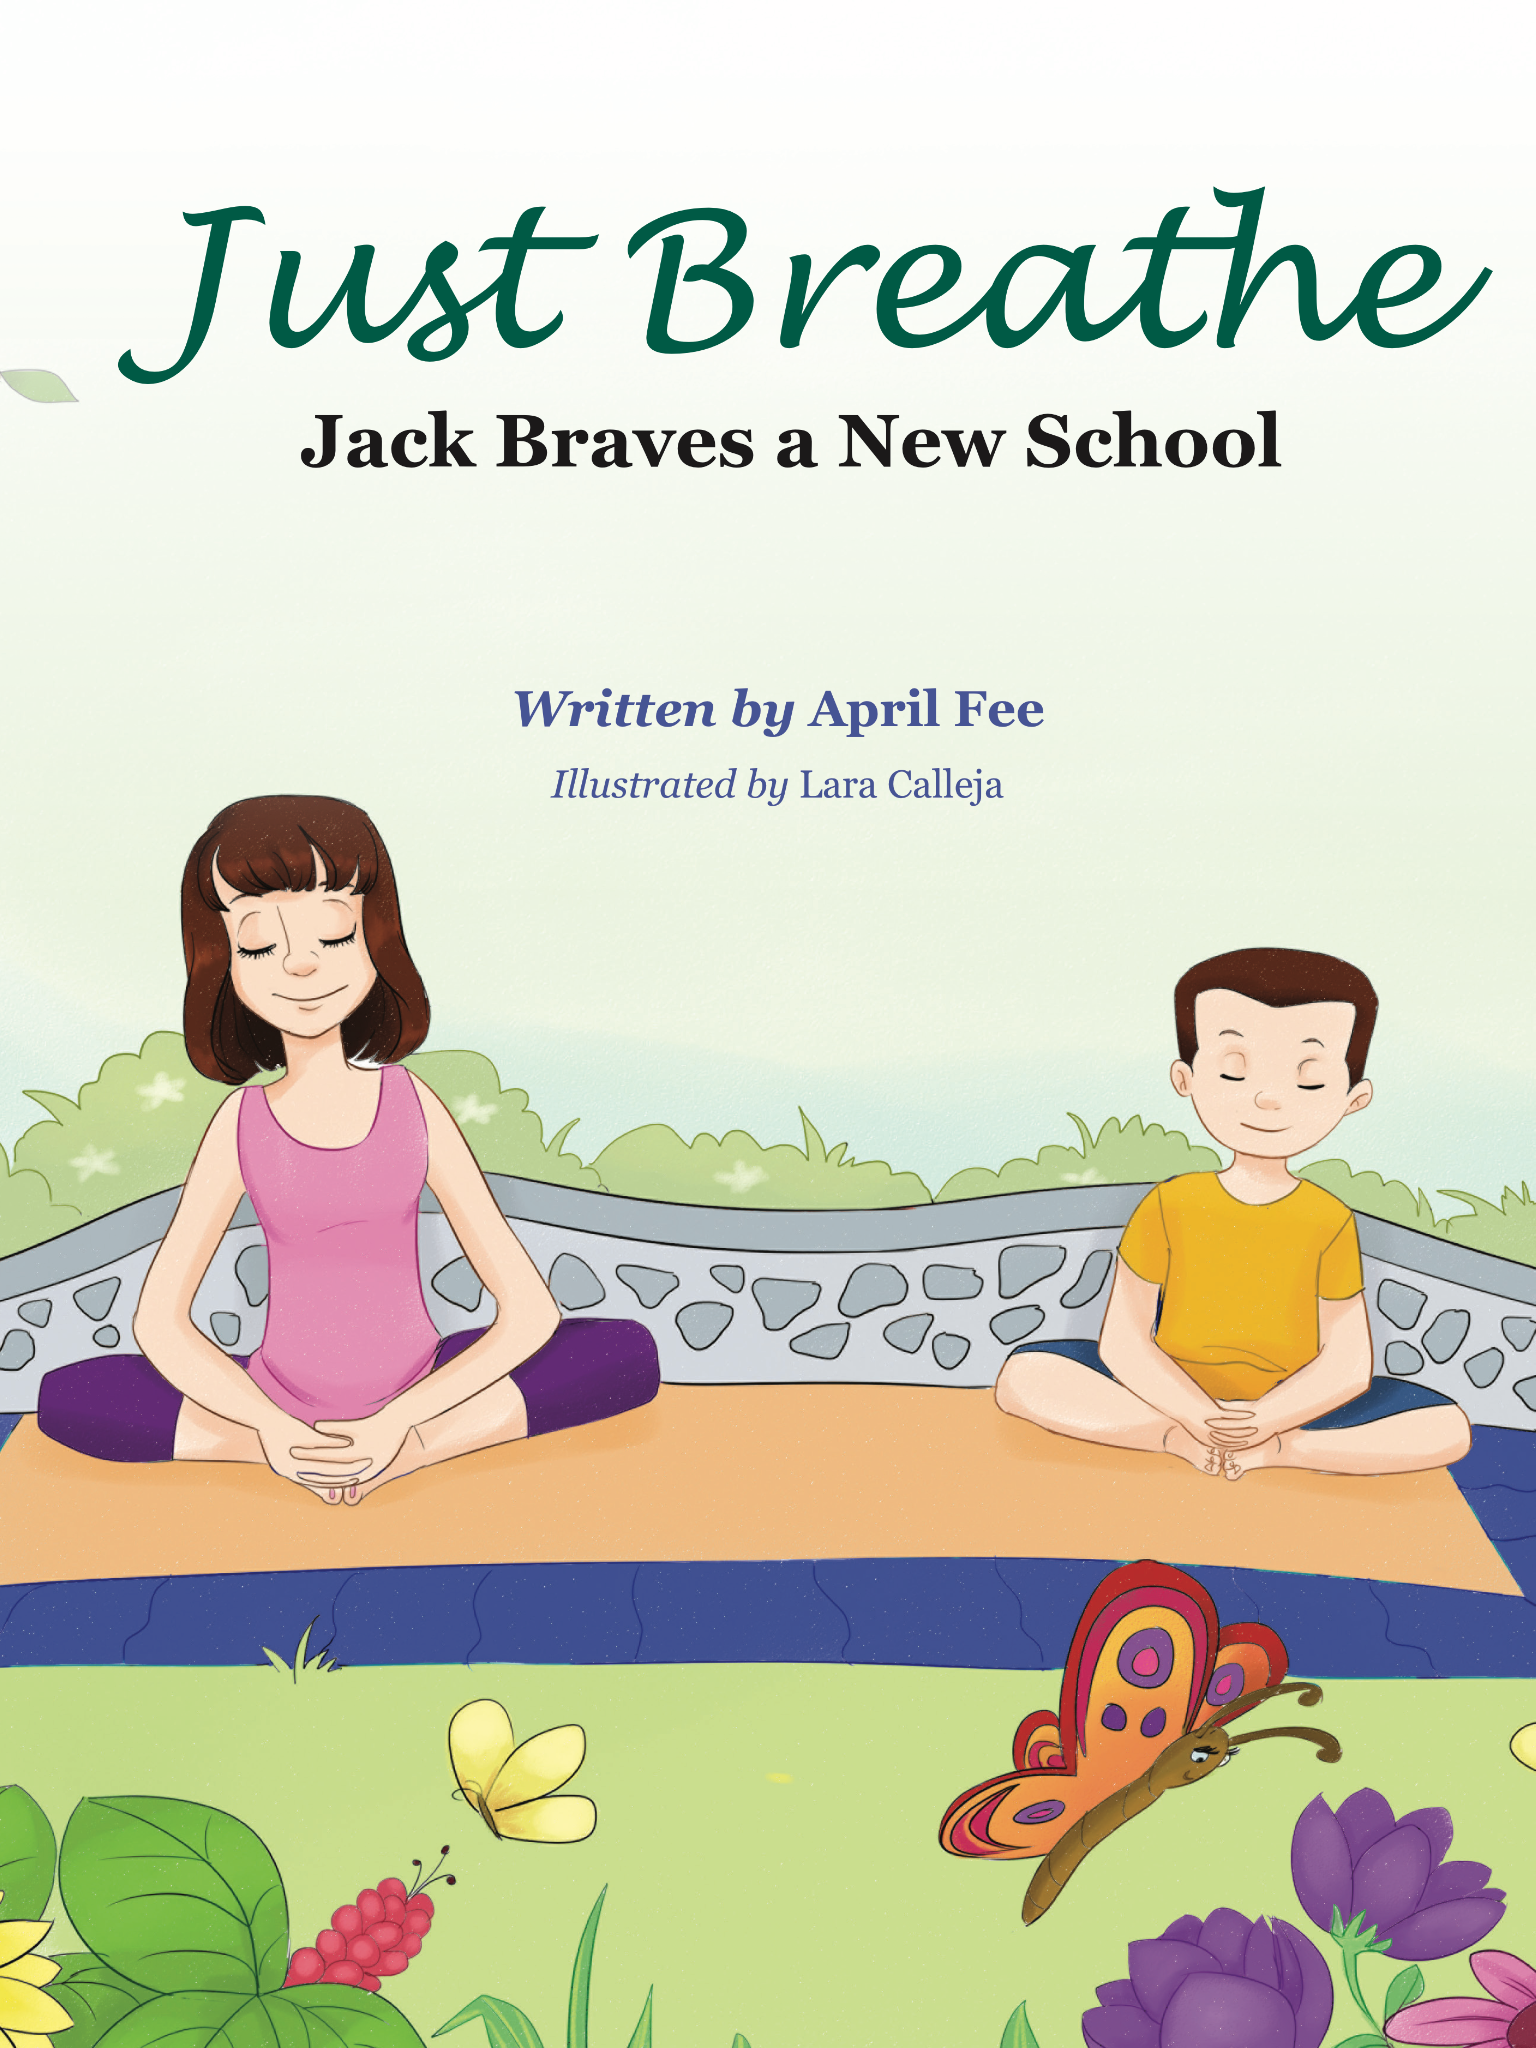 Just Breathe: Jack Braves a New School - Anxious about transitioning to a new school, Jack finds confidence and inner peace through the power of yoga. Written by April Fee, a registered yoga teacher, Just Breathe also includes a series of poses you can do to relax and lower anxiety.